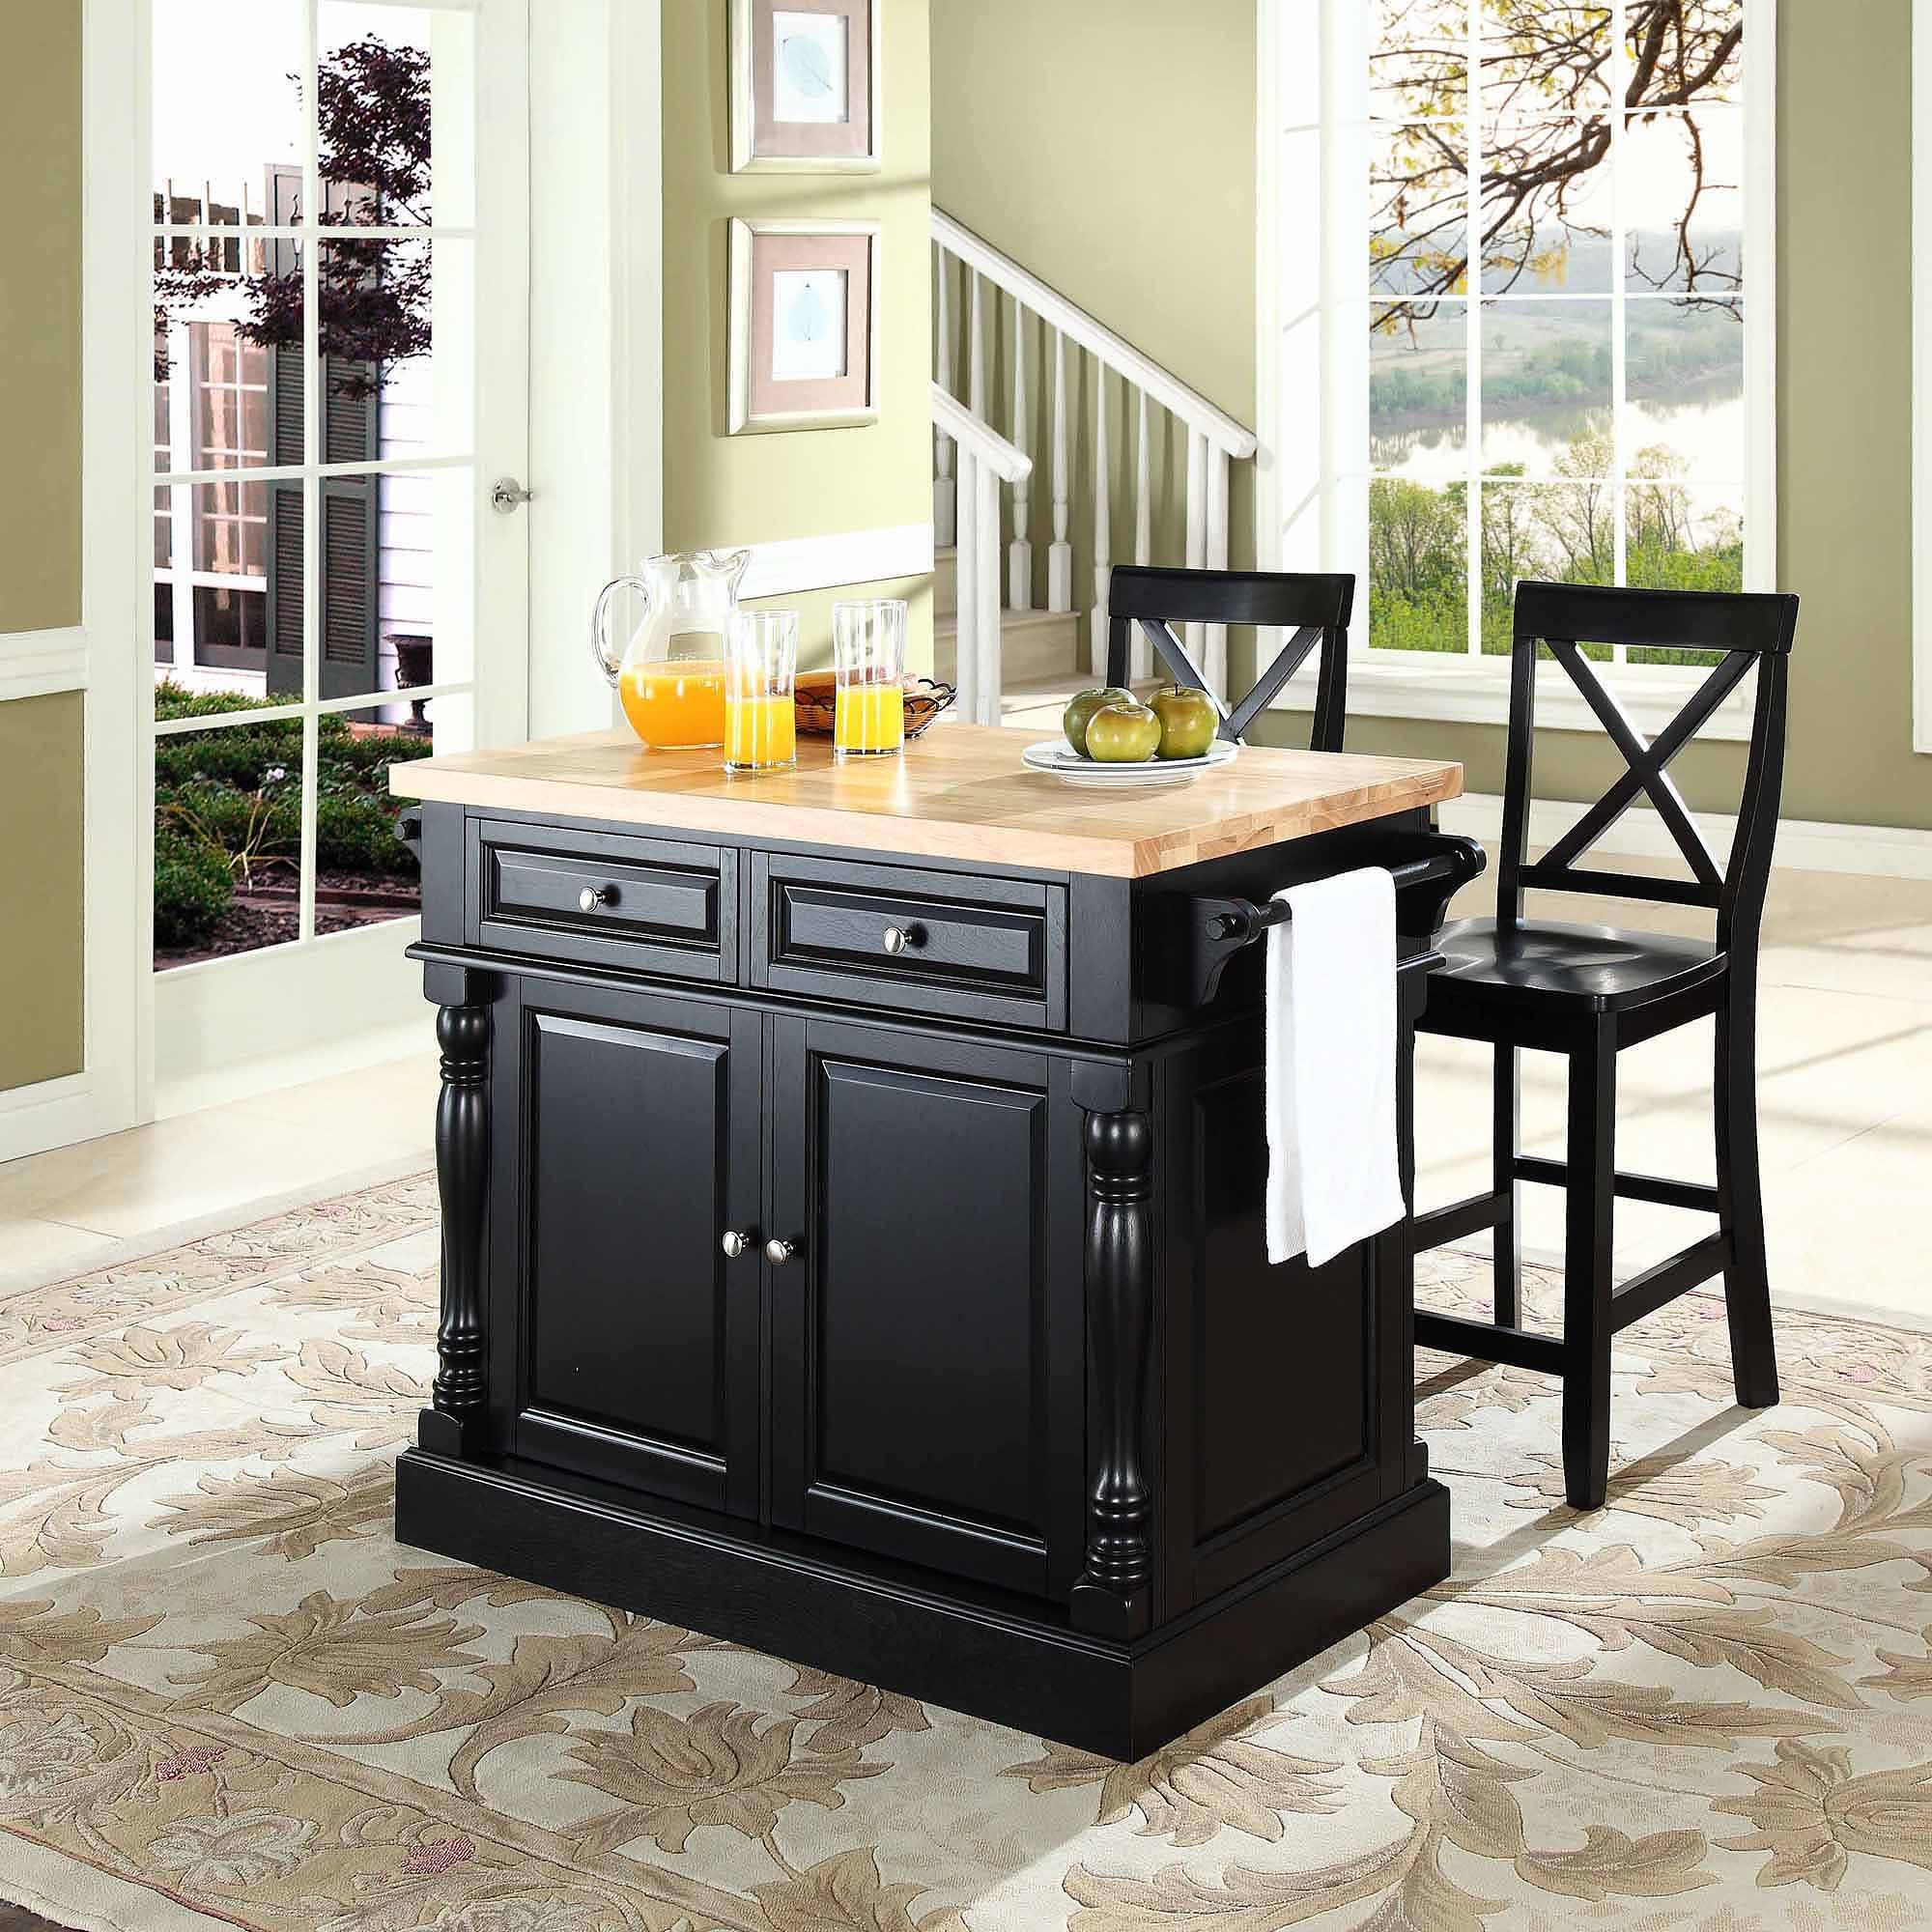 crosley furniture butcher block top kitchen island with 24   x back stools crosley furniture butcher block top kitchen island with 24   x back      rh   walmart com